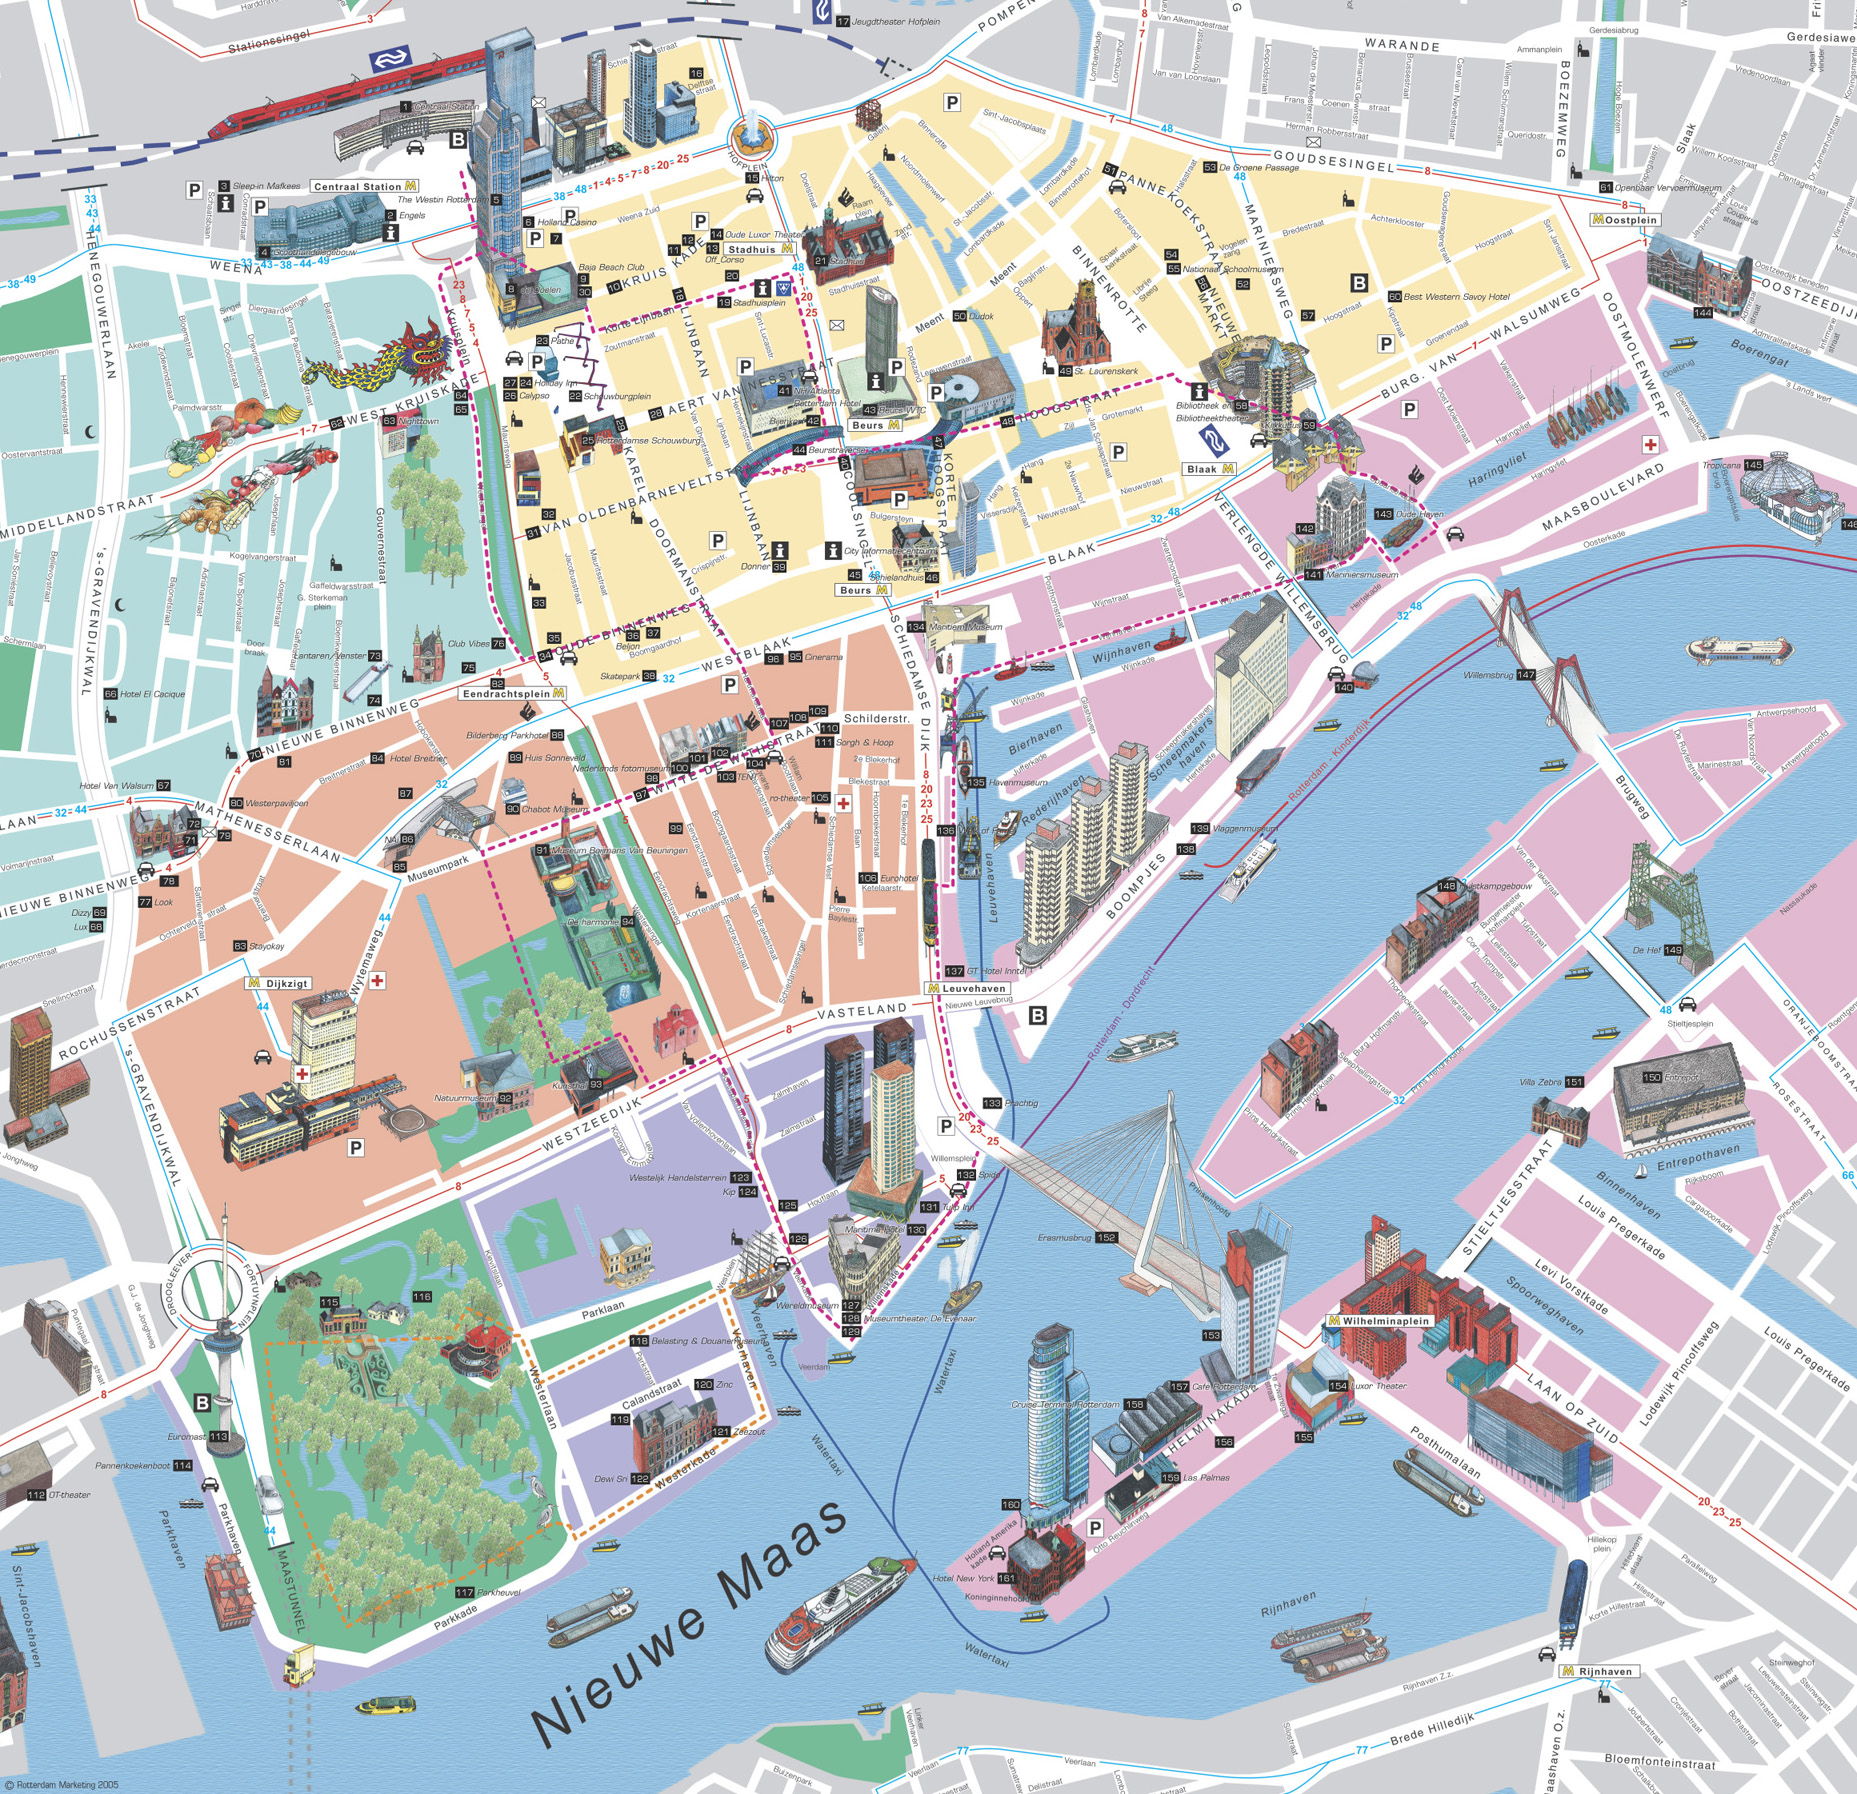 High resolution large map of rotterdam download for print out